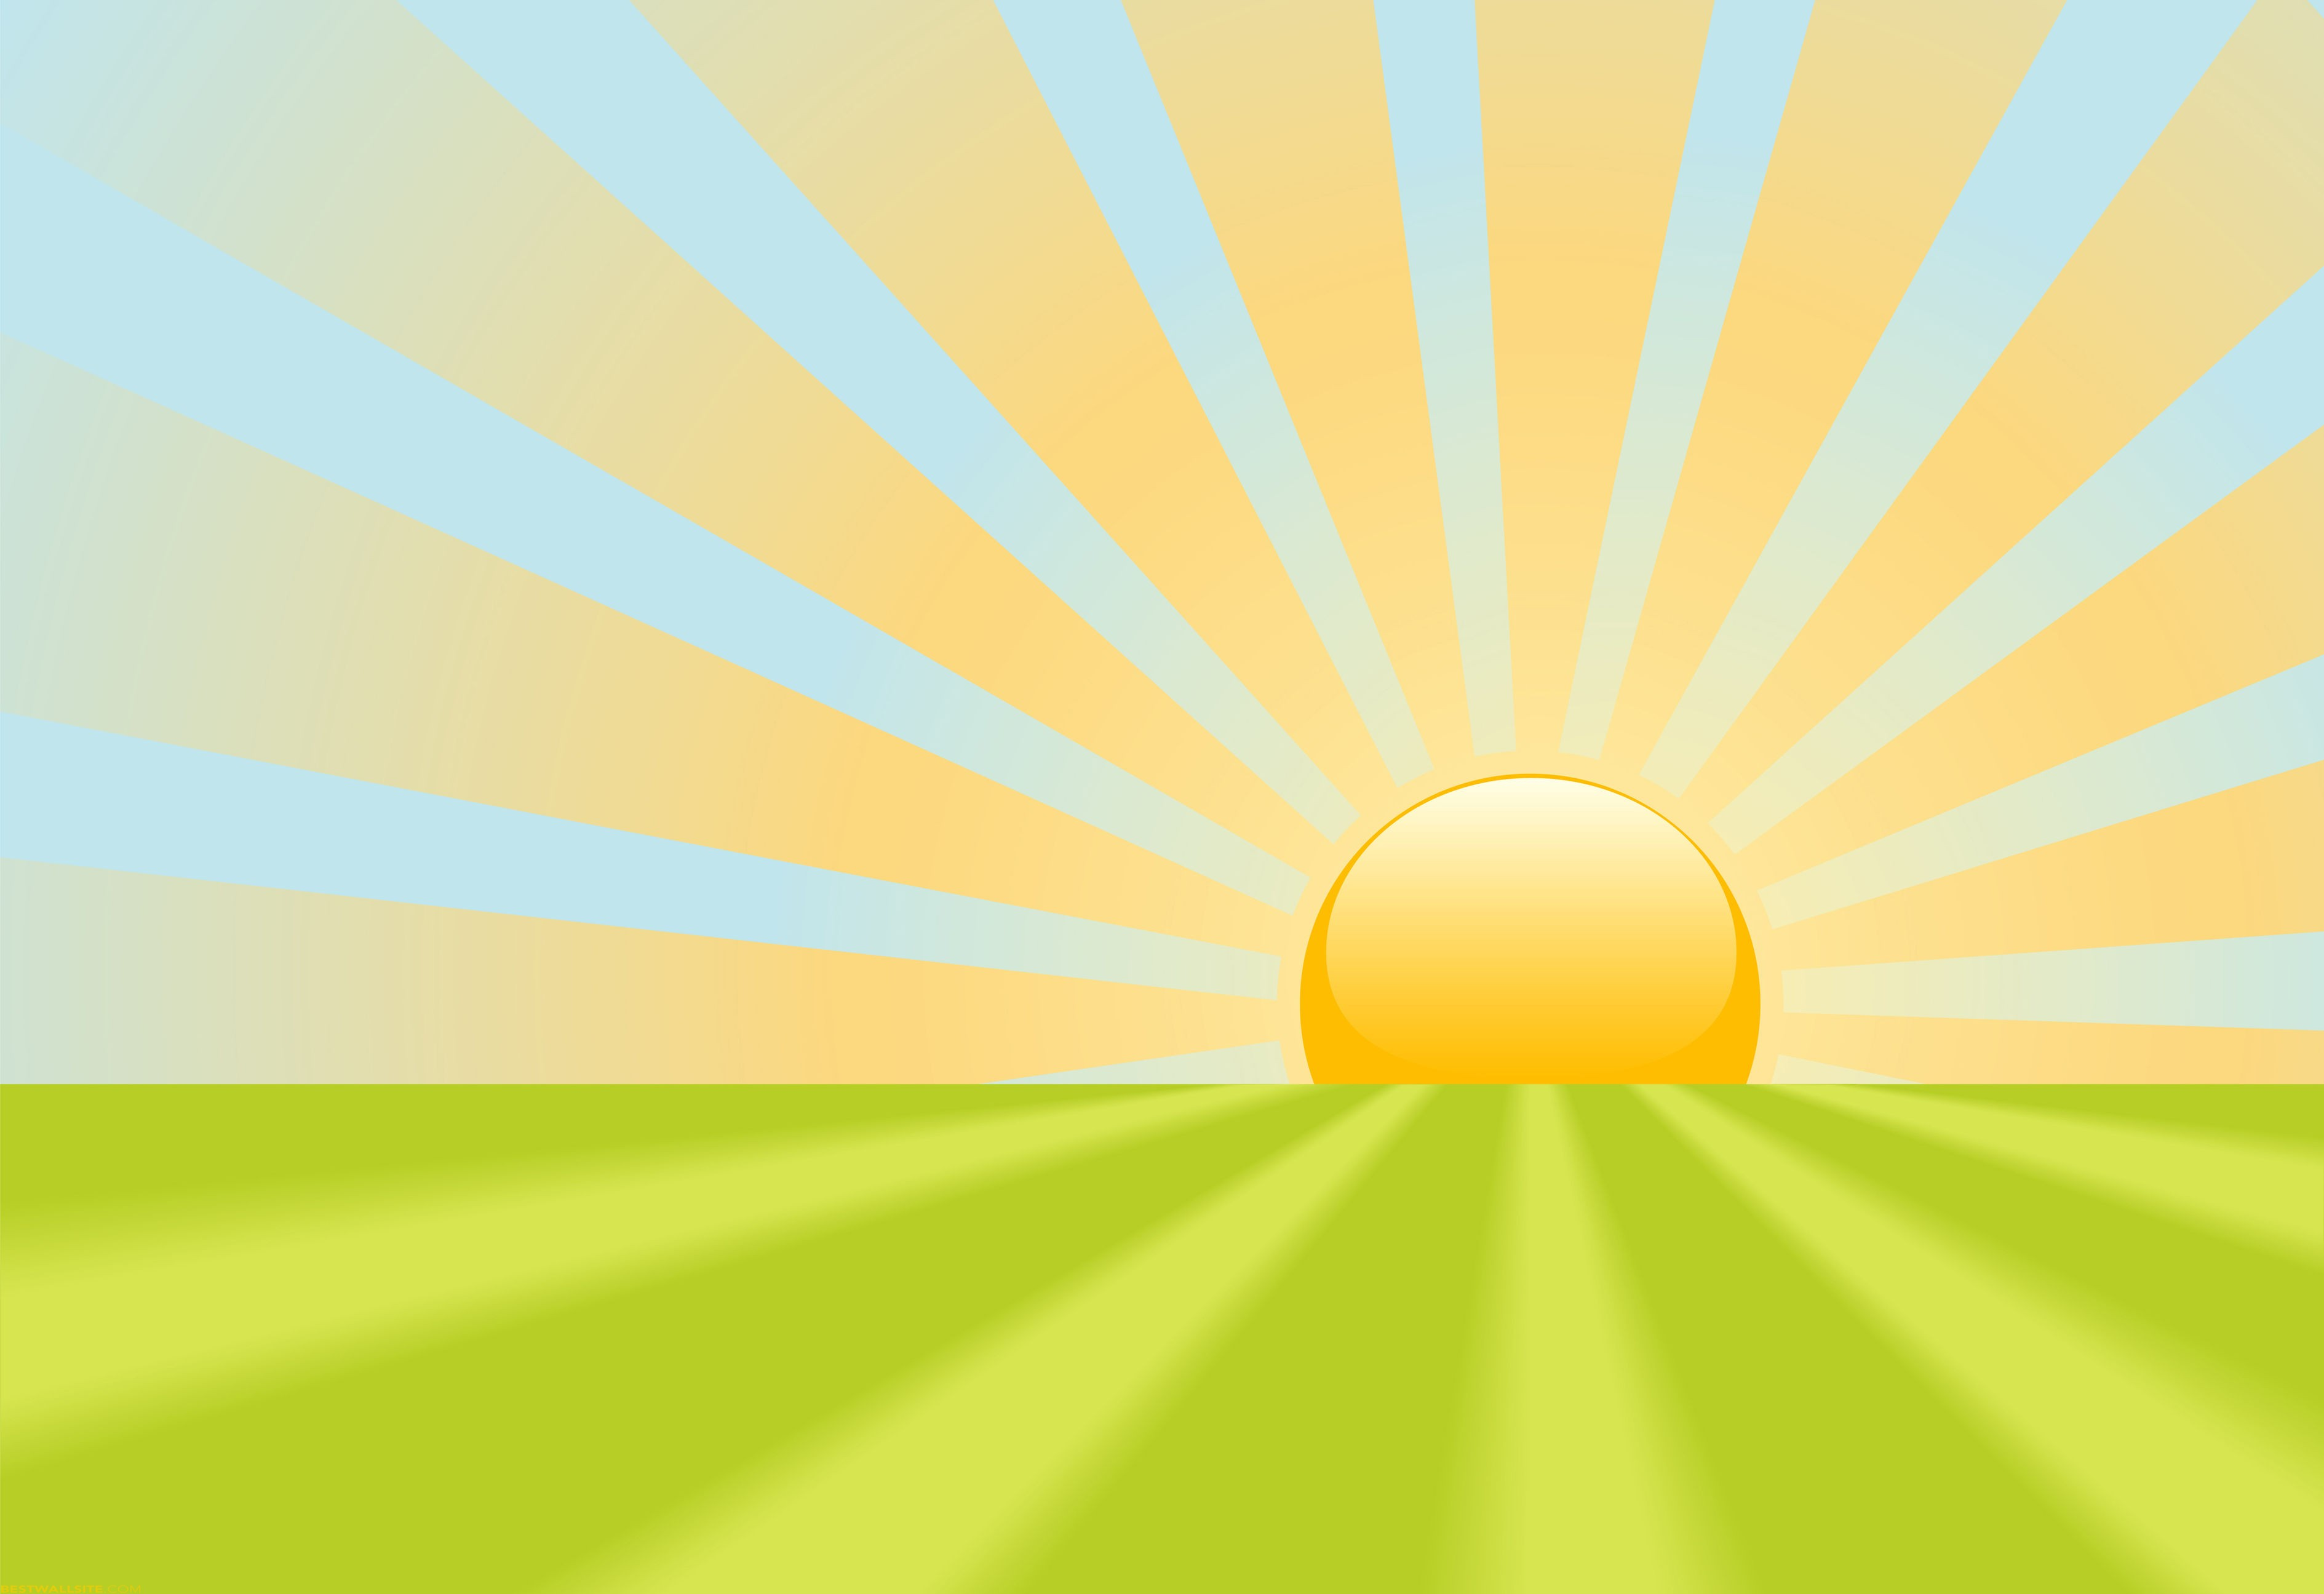 Rise And Shine Clipart